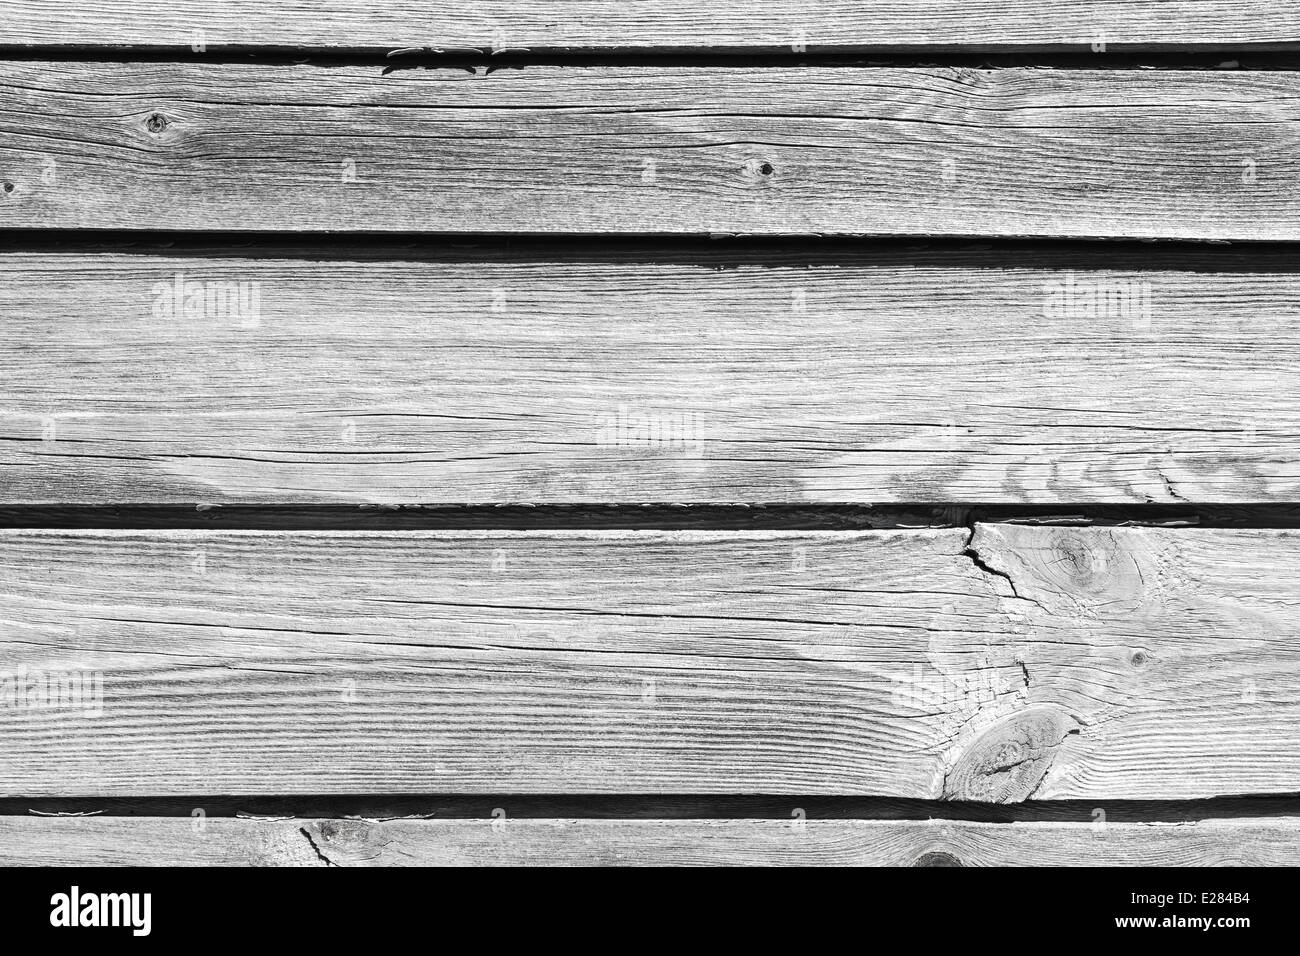 Old gray wooden wall background photo texture - Stock Image